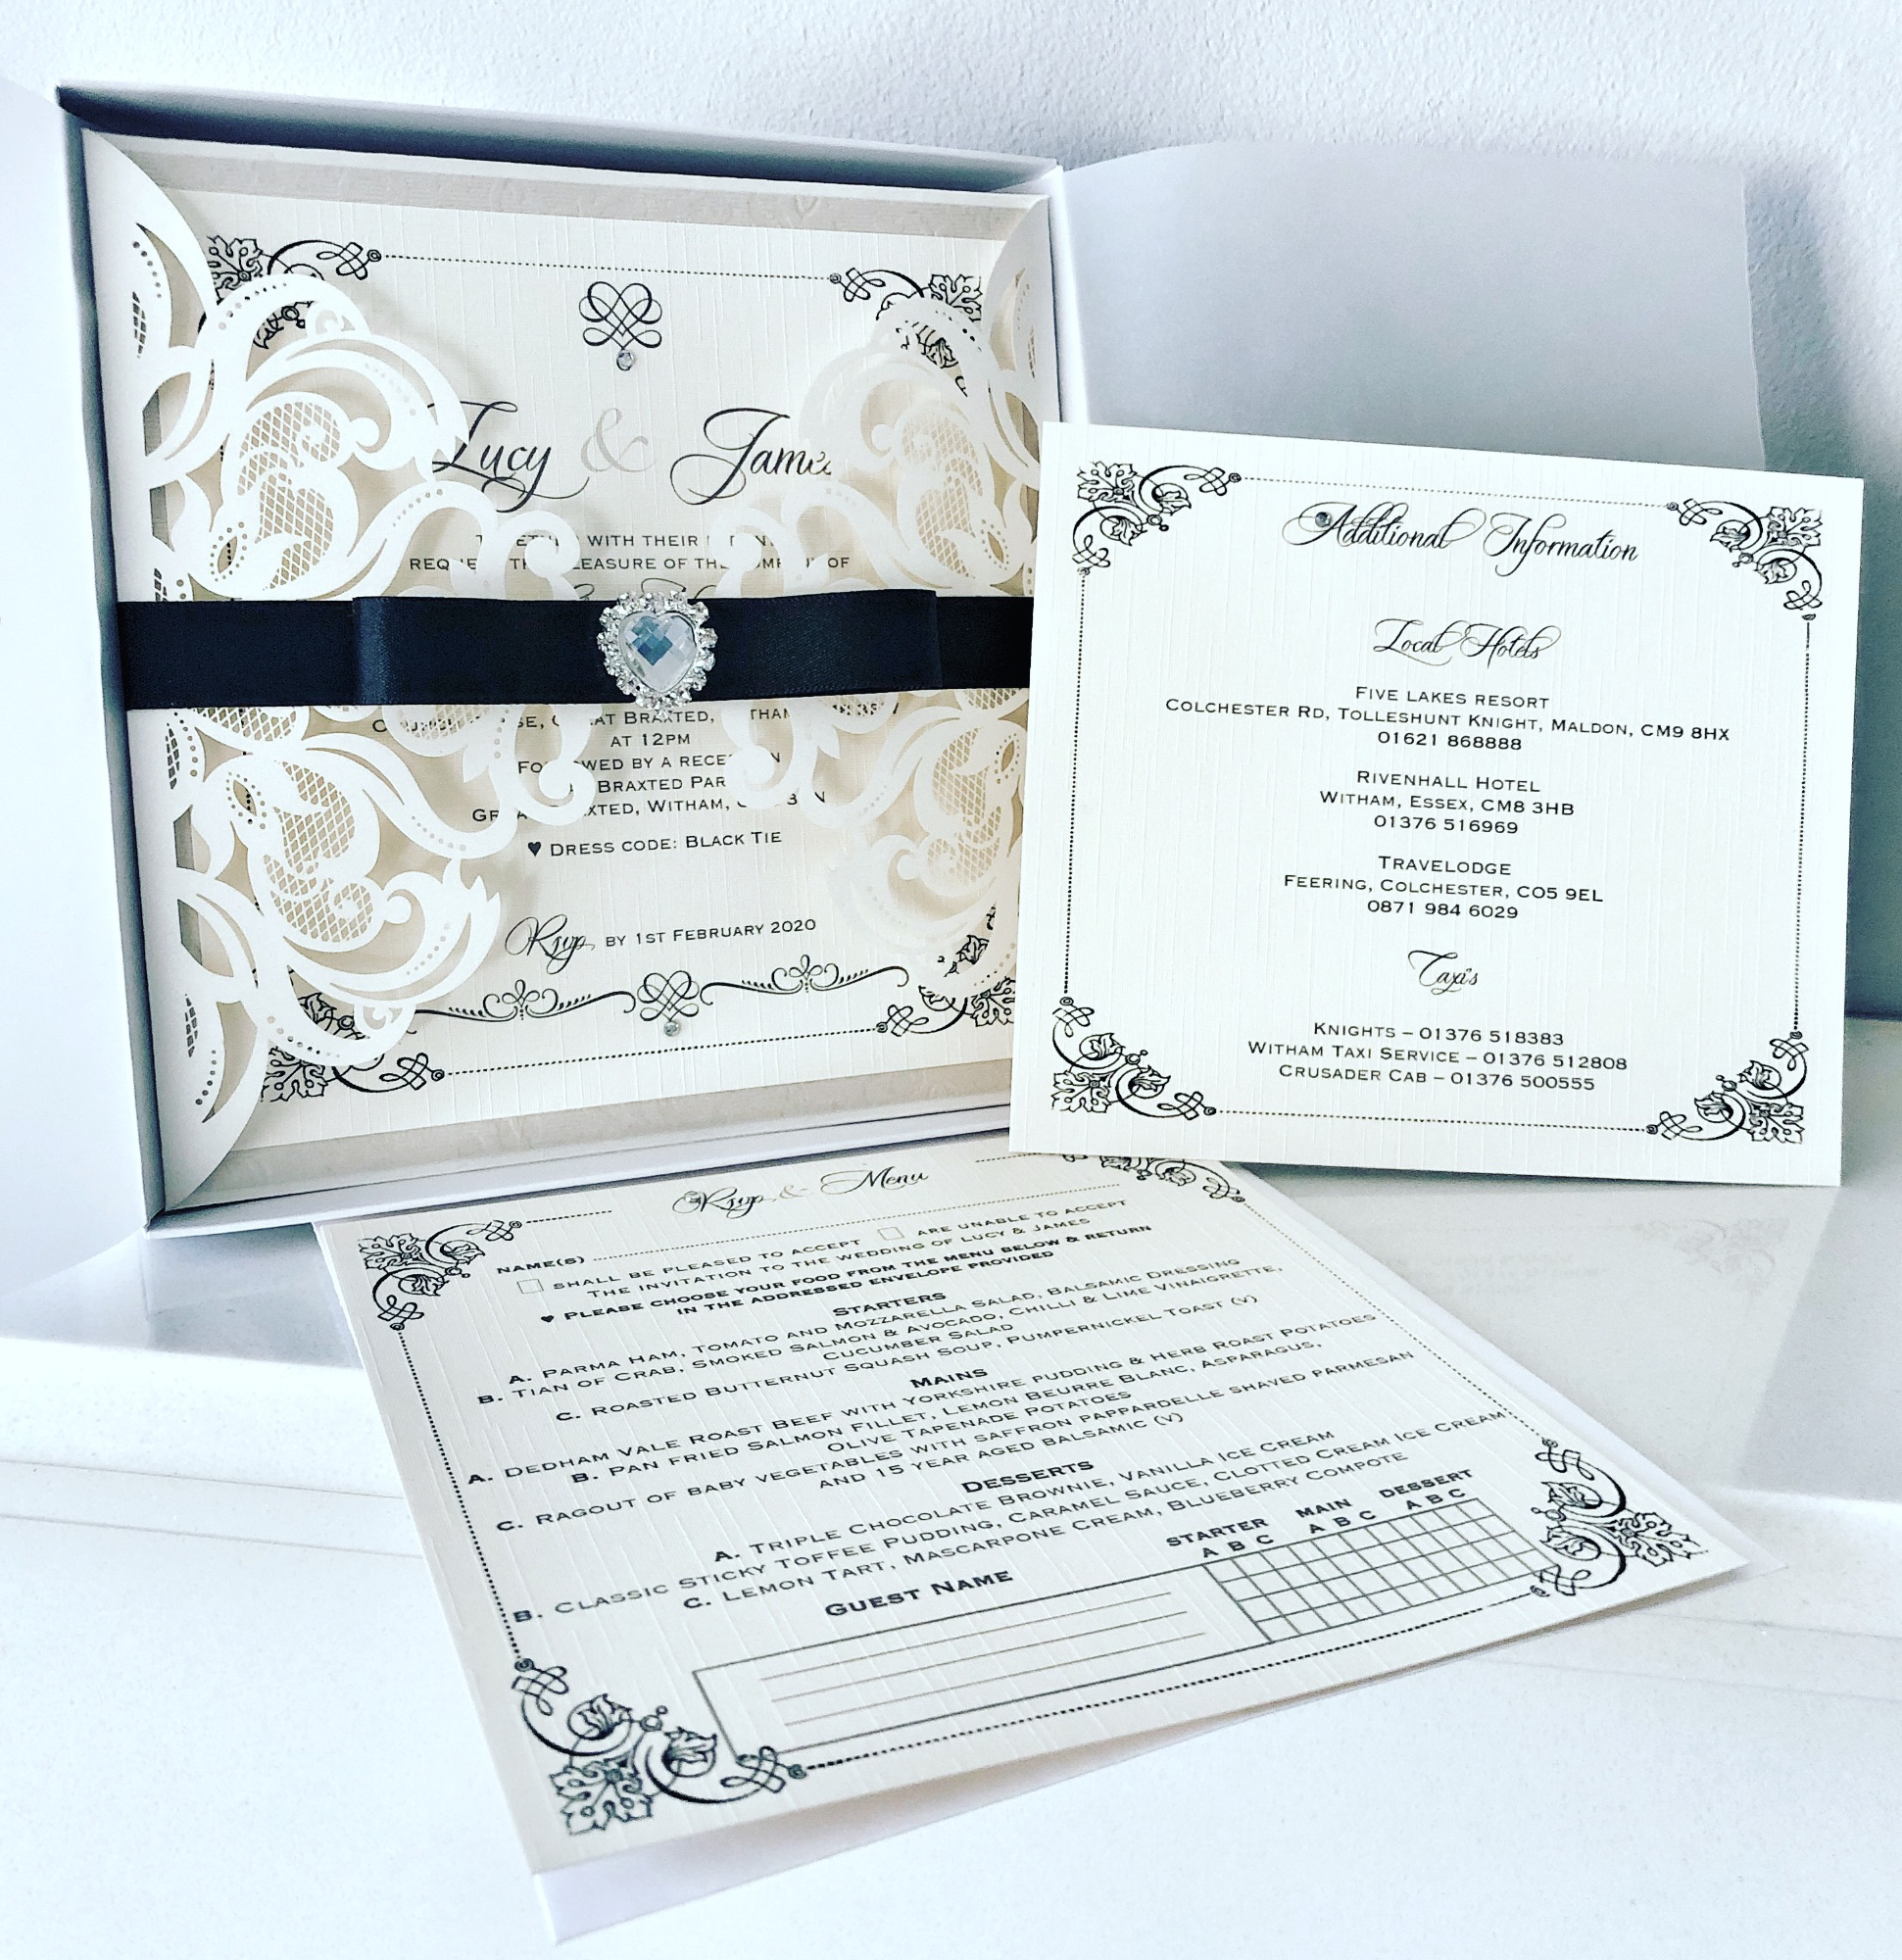 Laser cut invitation with black tie bow